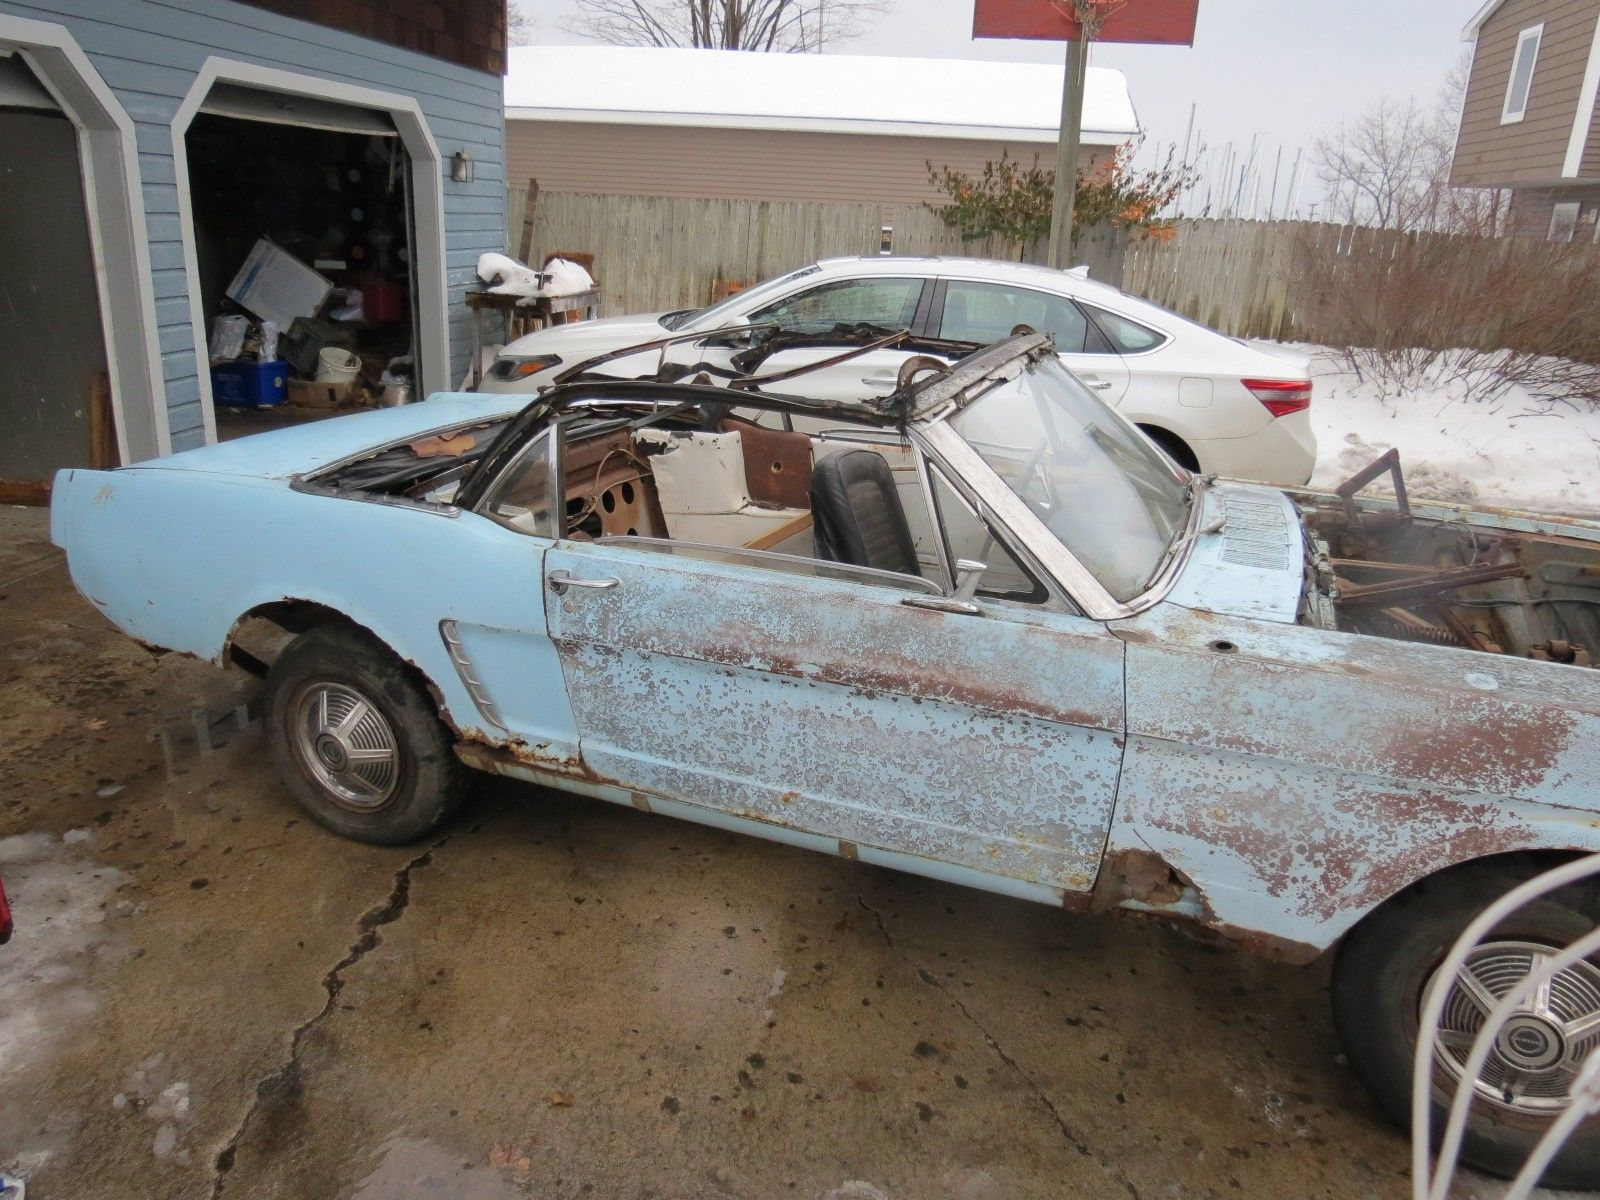 Ebay 1965 ford mustang rust bucket project 1964 1 2 ford mustang convertible project car original 260 v 8 auto ps carparts carrepair